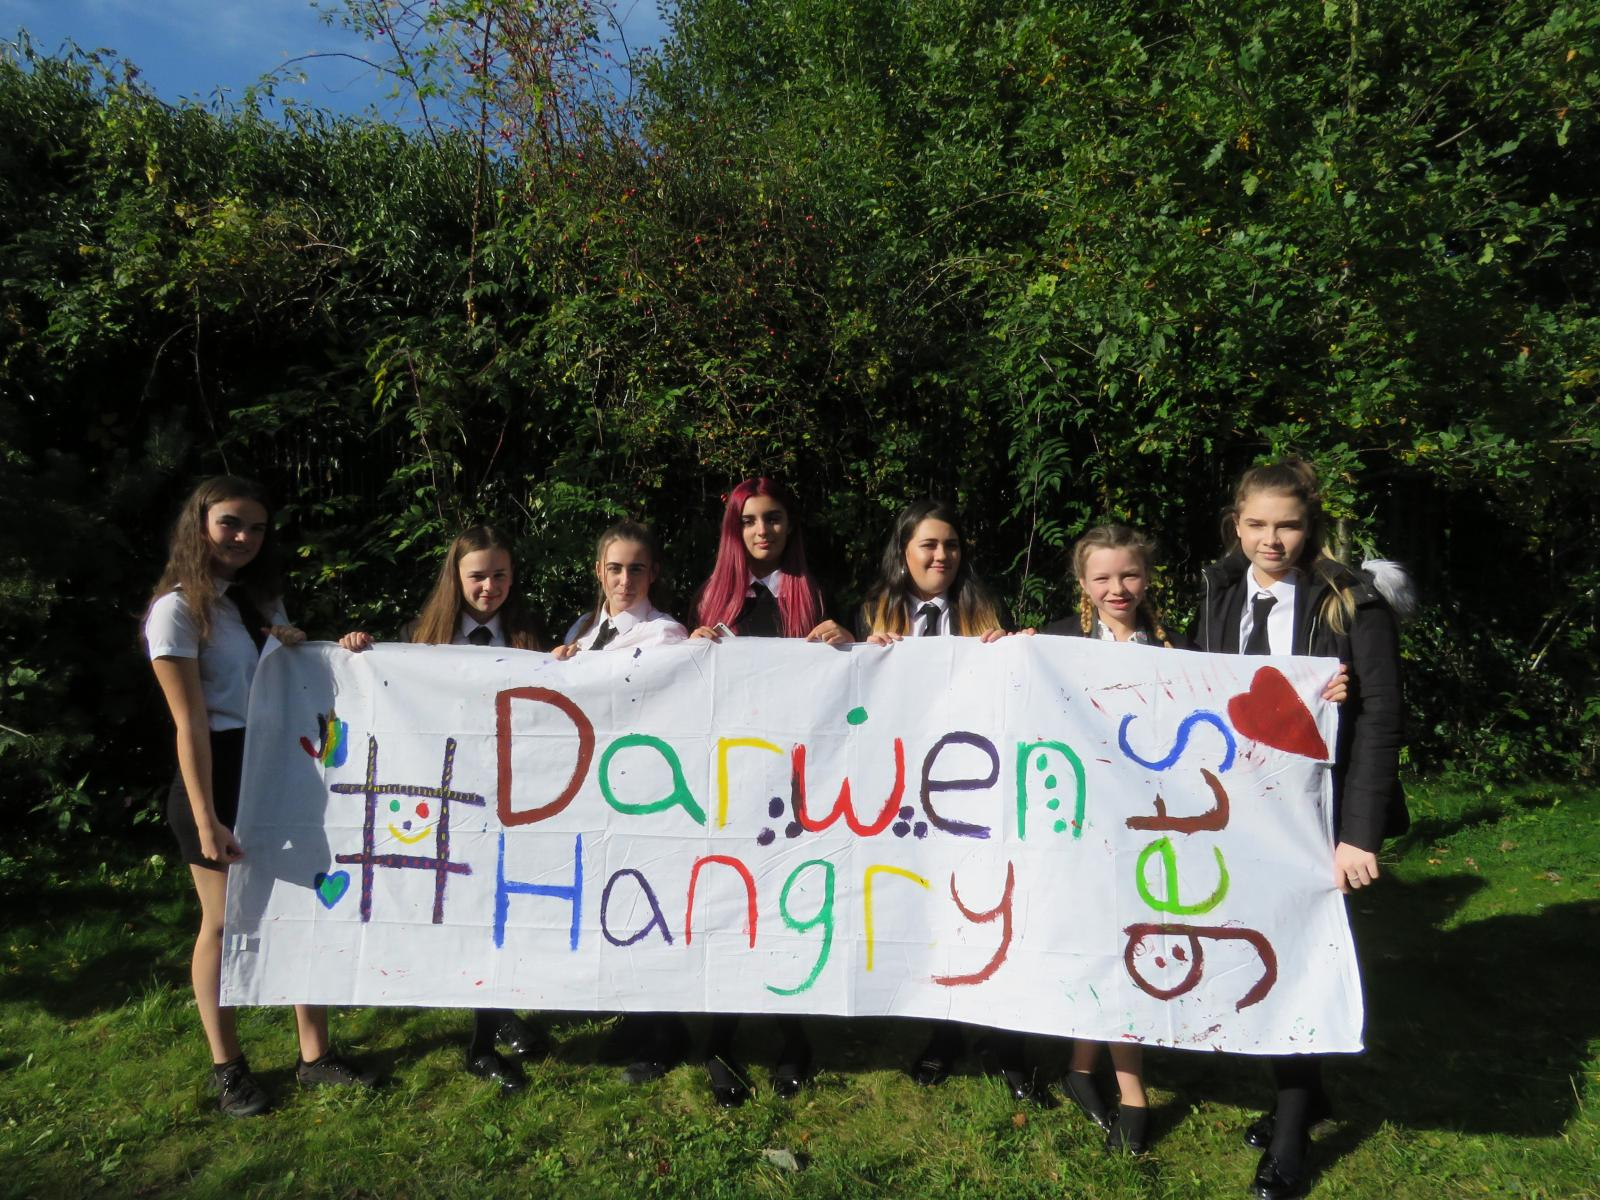 Young people from Darwen